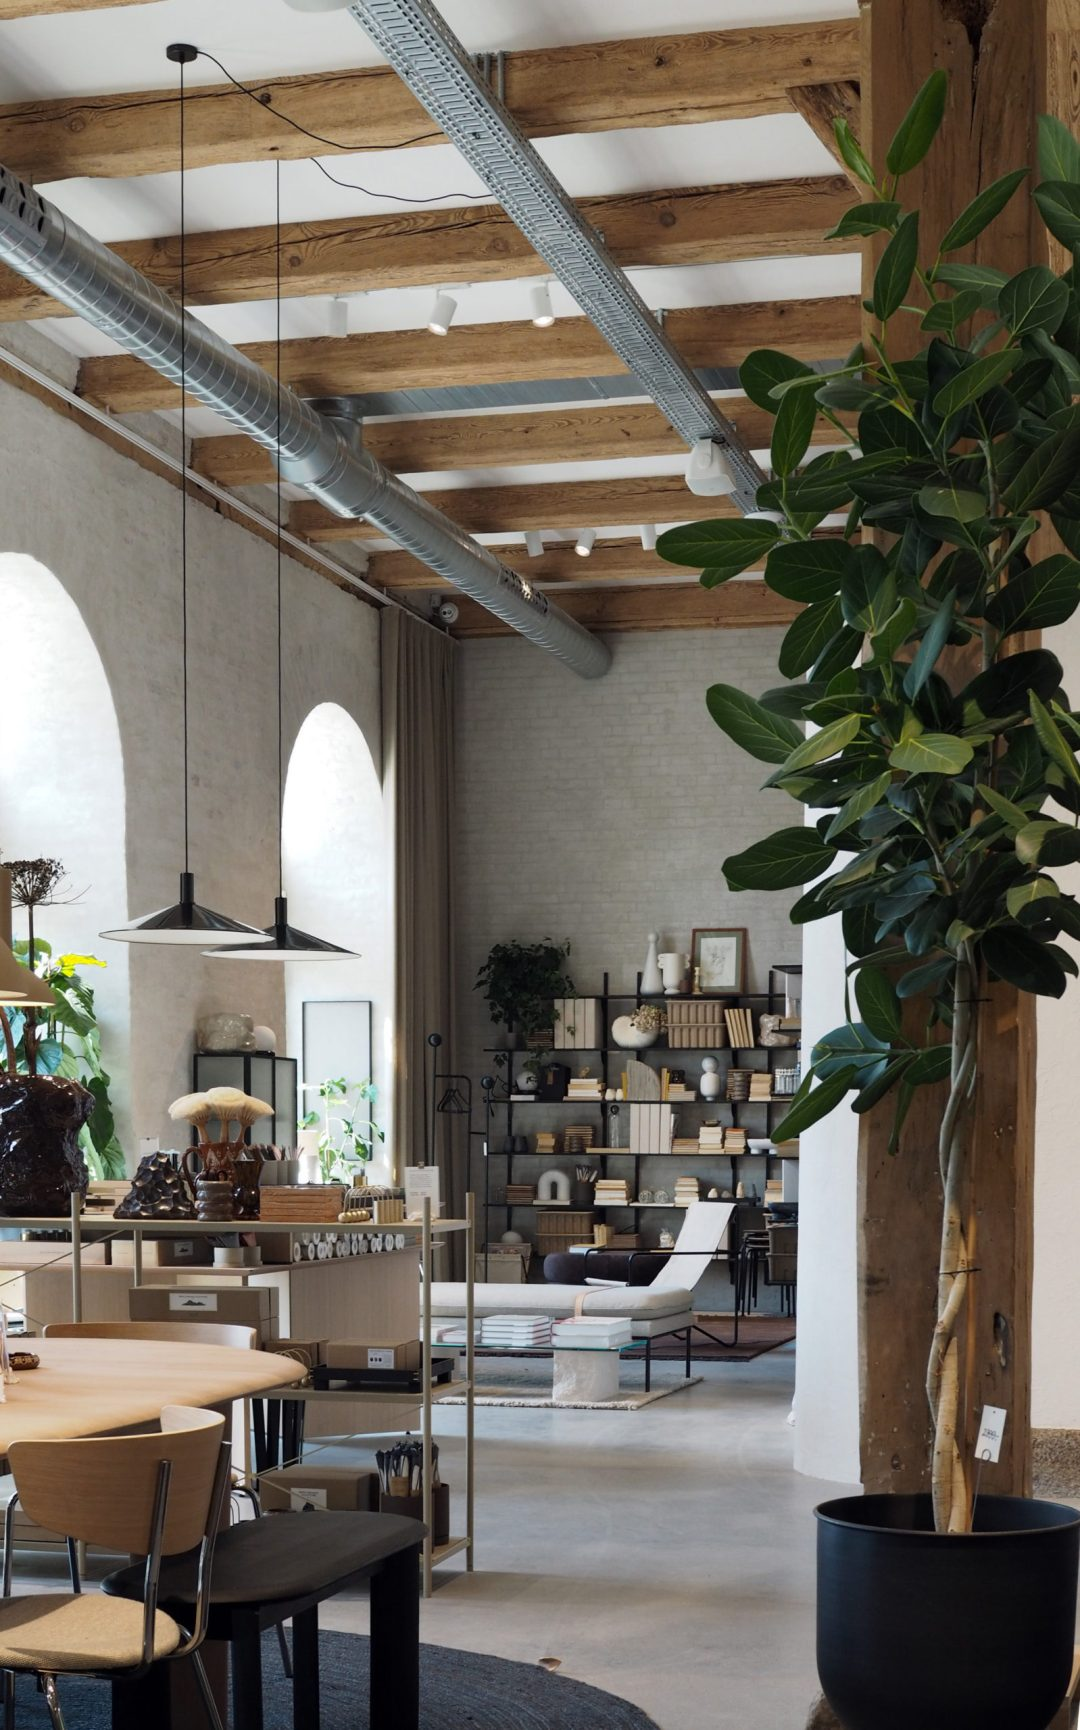 The new home of Ferm Living